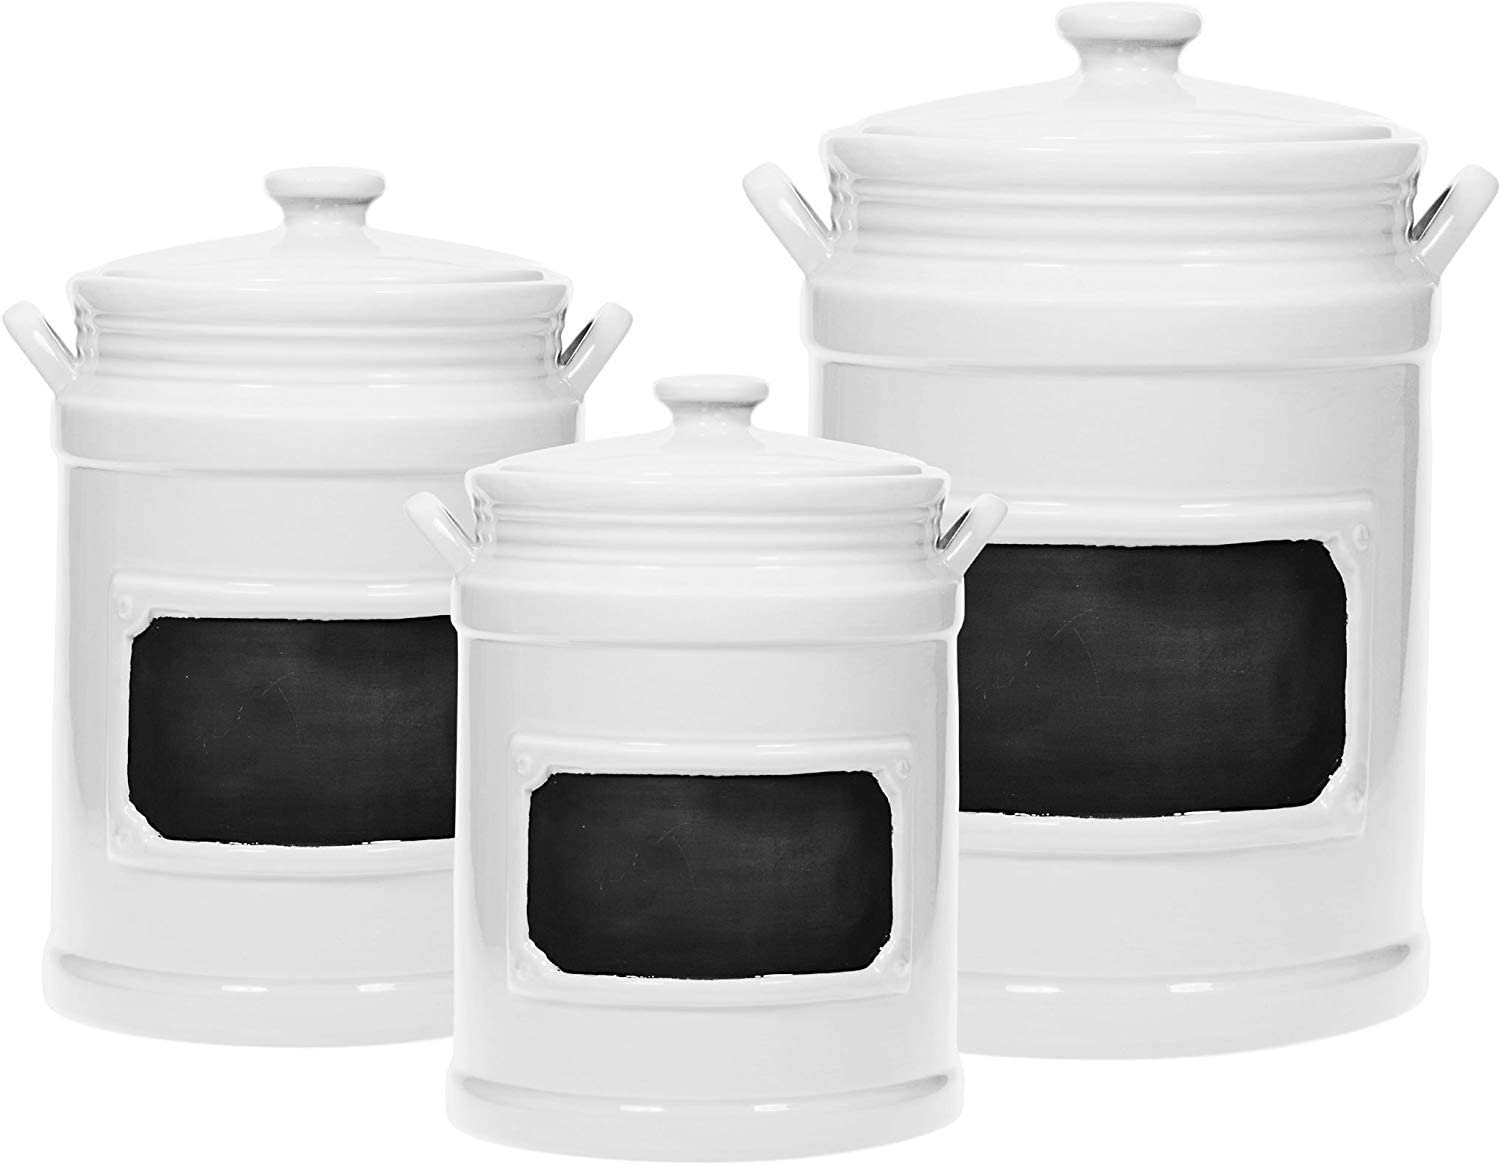 Kitchen Canister Set 3 Piece Airtight Canisters - Ceramic Food Storage Jars for Kitchen and Bathroom | Decorative White Ceramic Canister Set